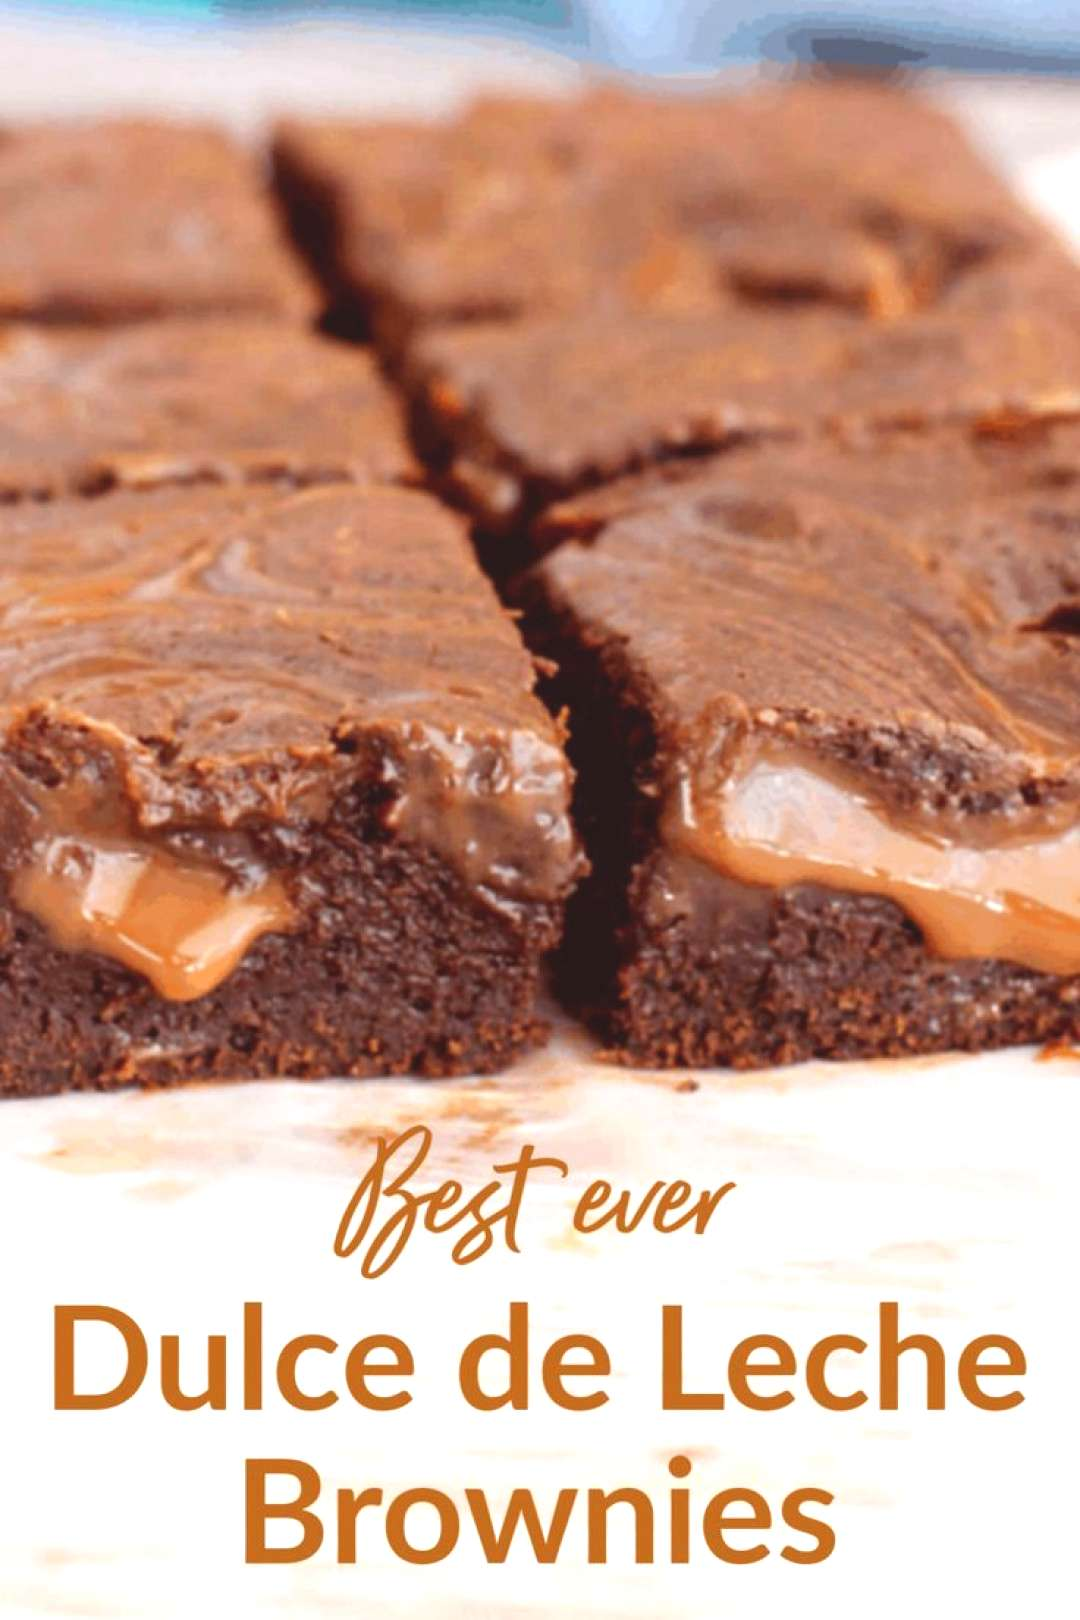 Fudgy, gooey, and irresistible, this is the best recipe for Dulce de Leche Brownies youll ever mak